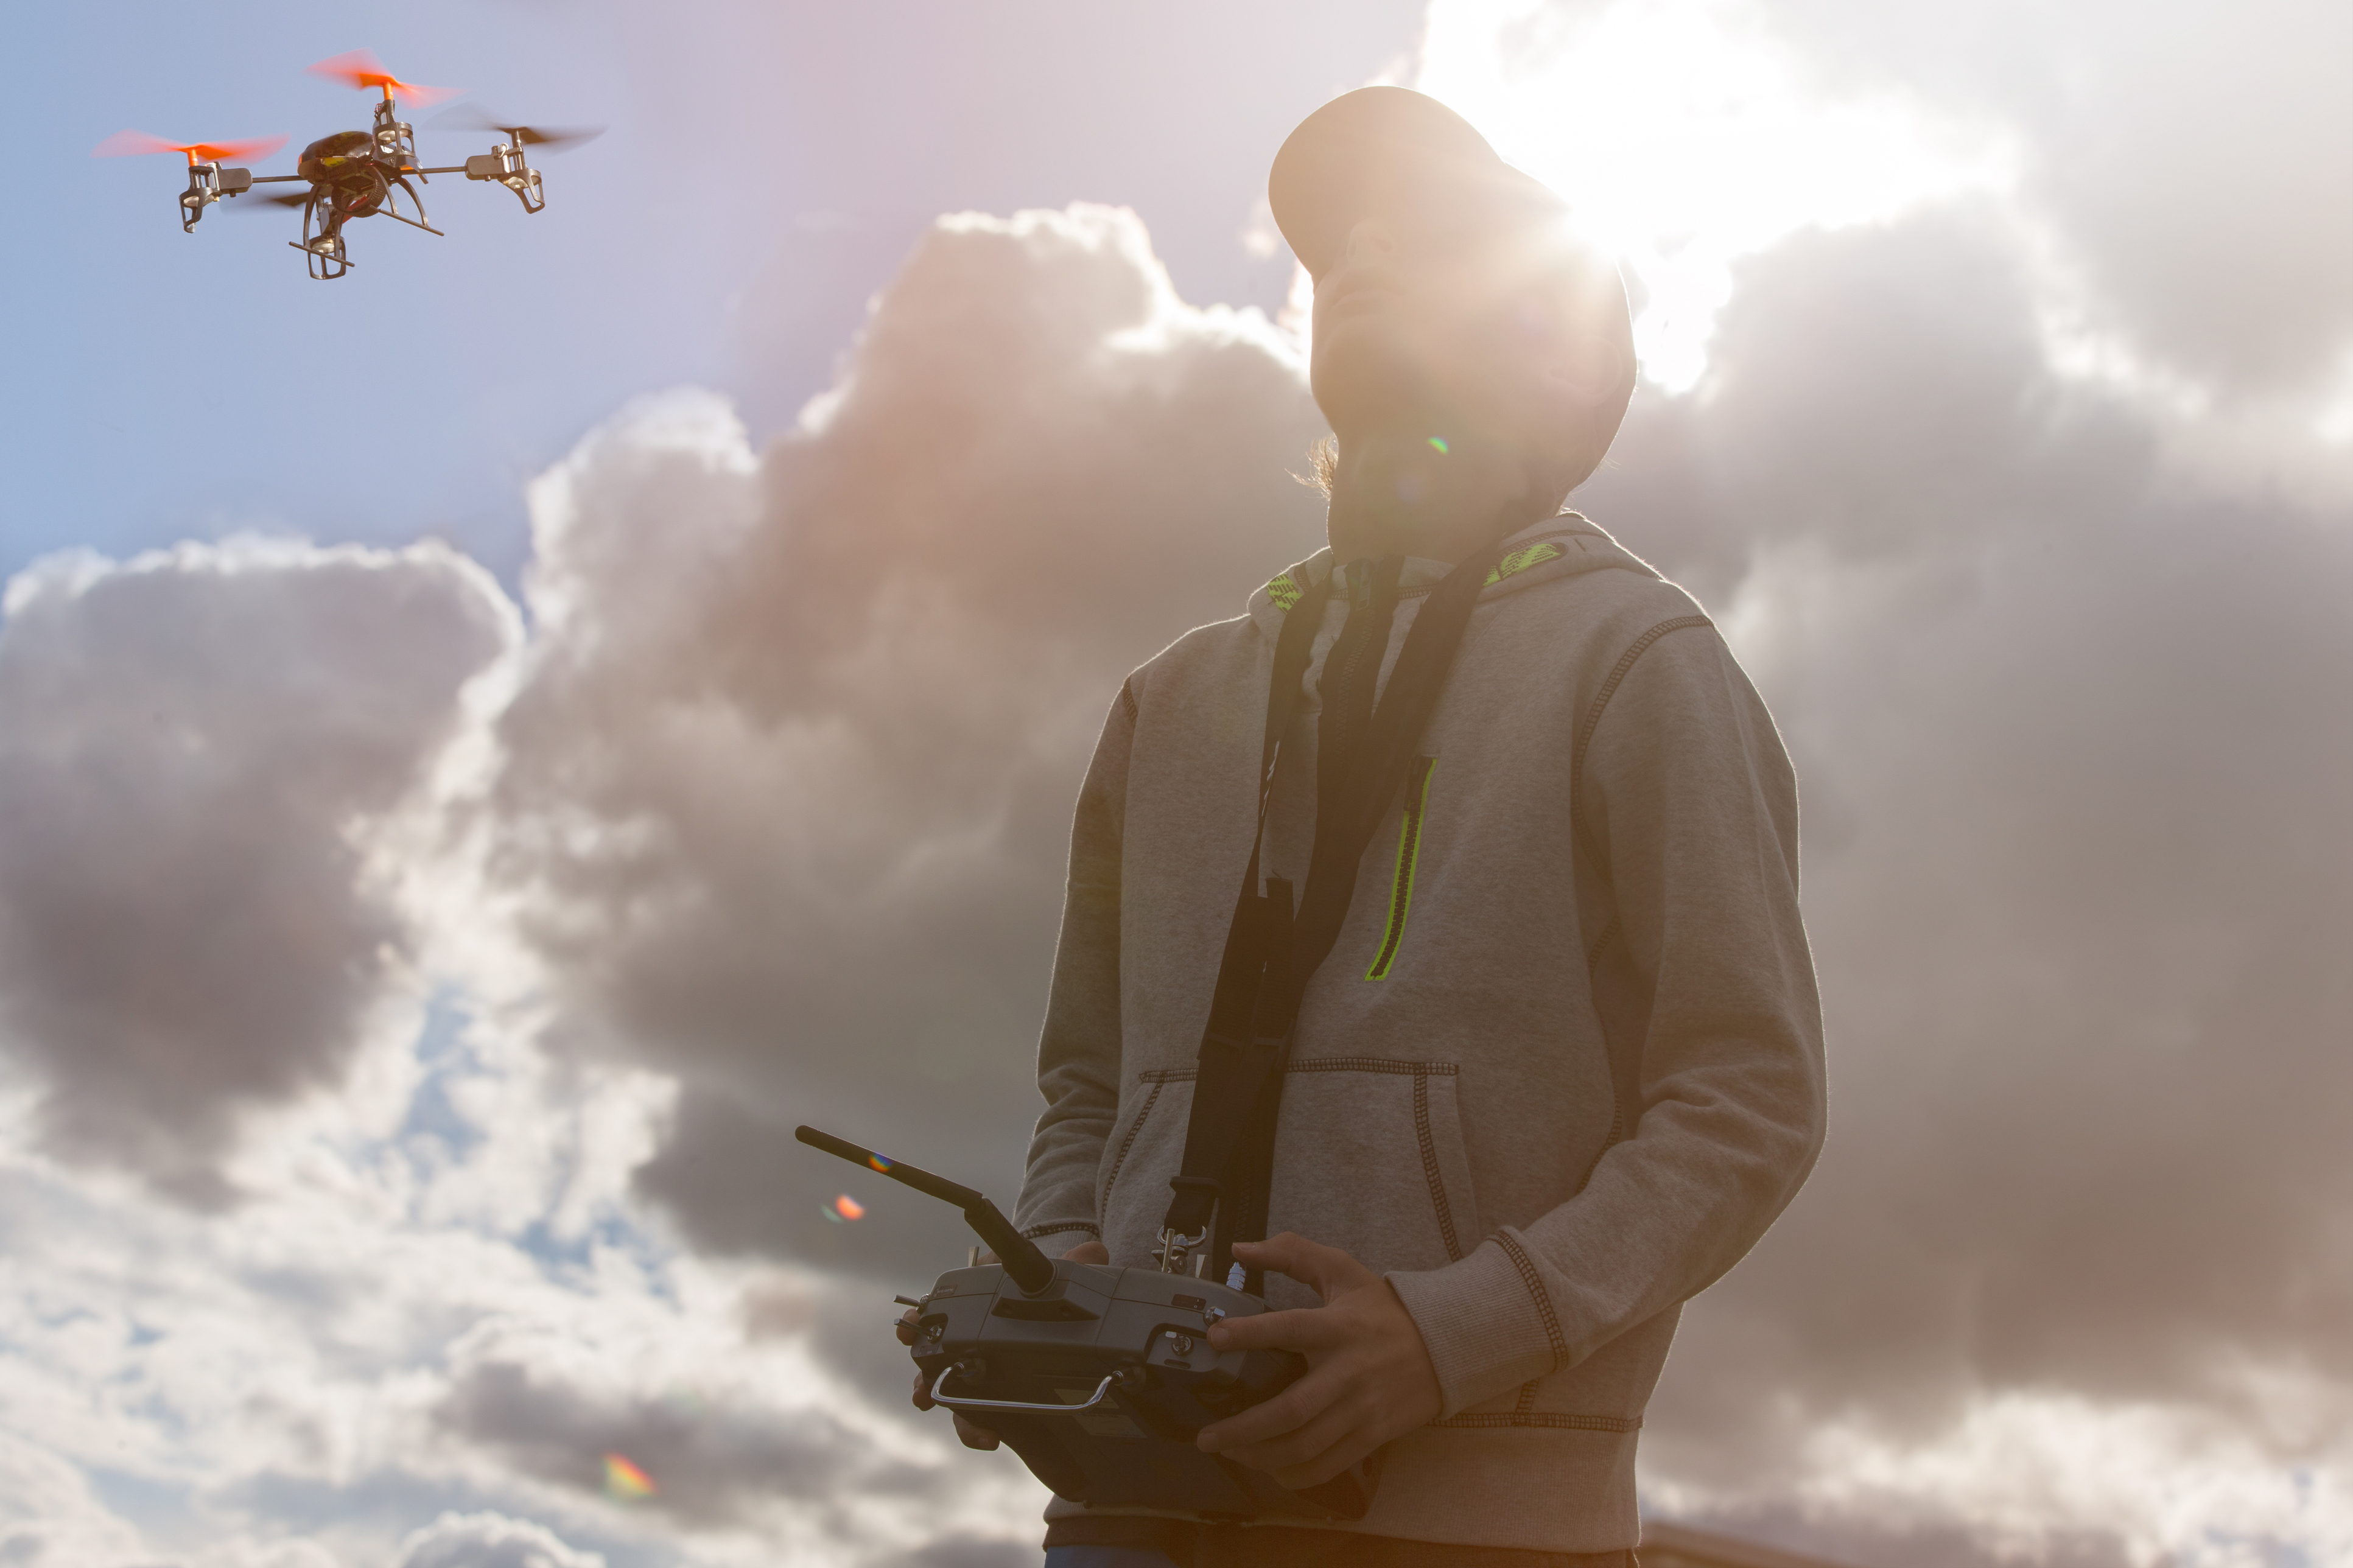 If you want to train as a drone pilot, it costs less than $3000 and a five day course